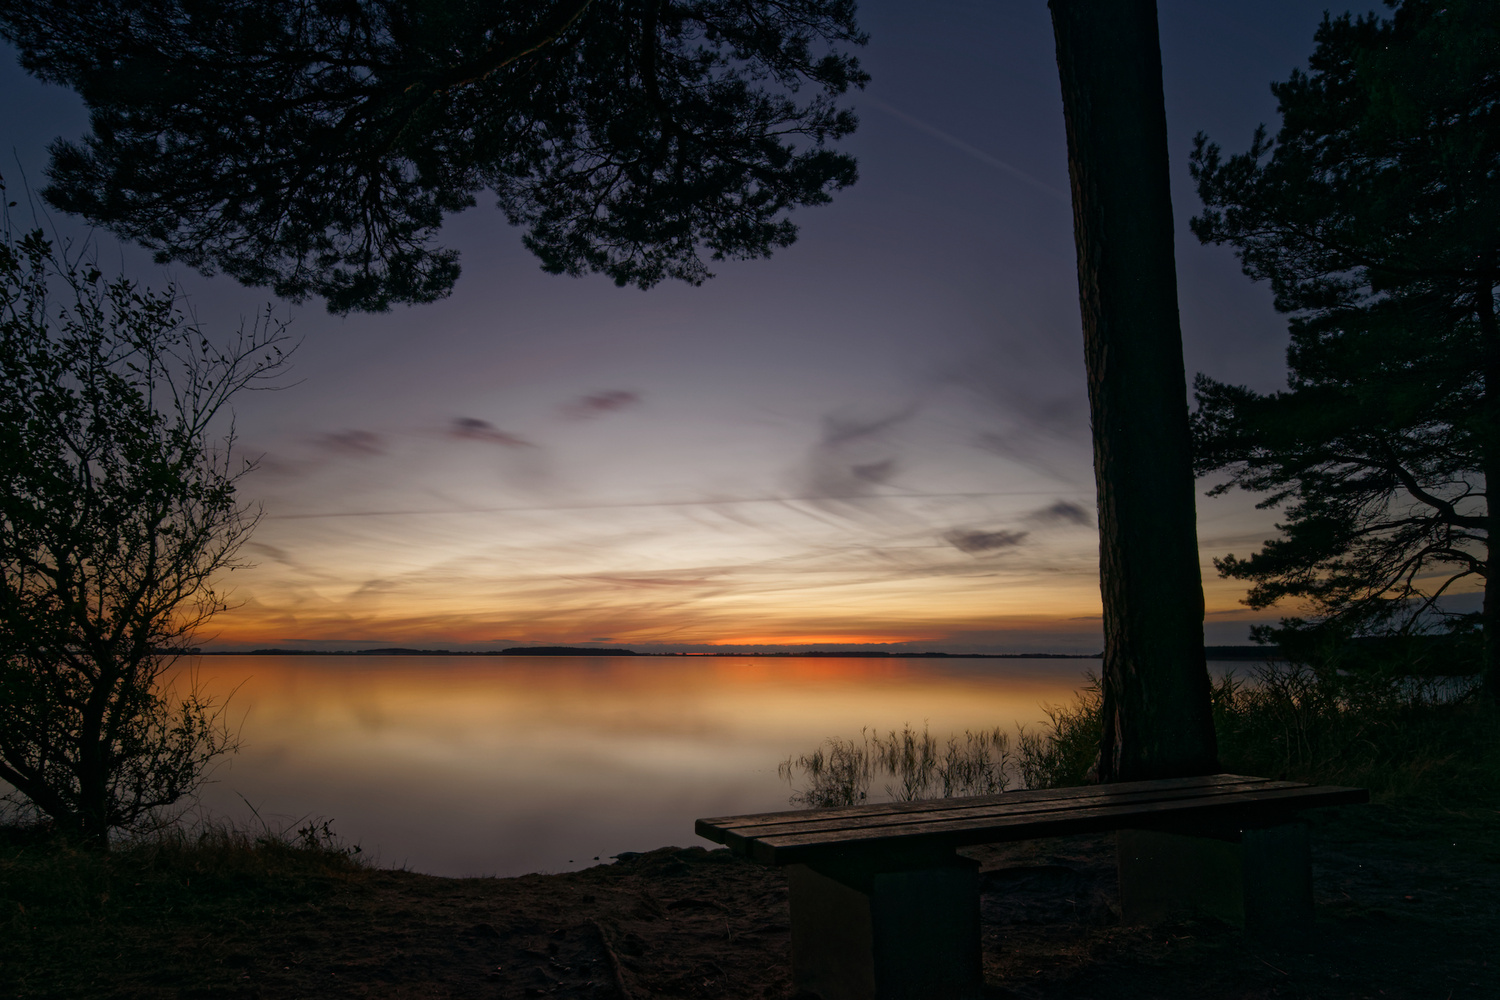 After sunset by Jan Grau